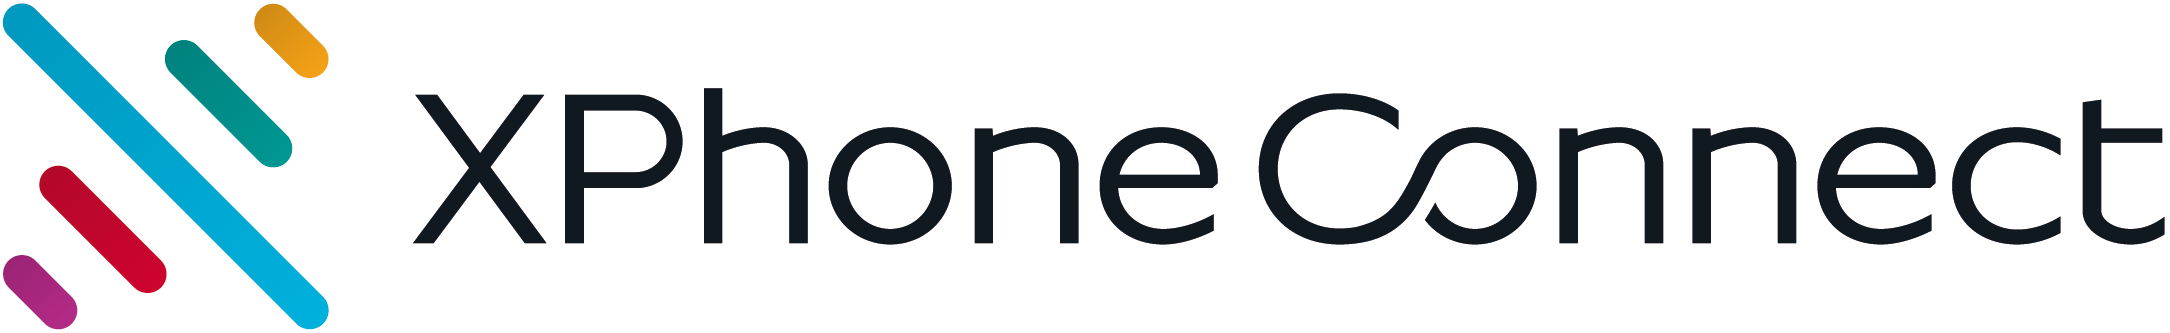 XPhone Connect Logo OnWhite